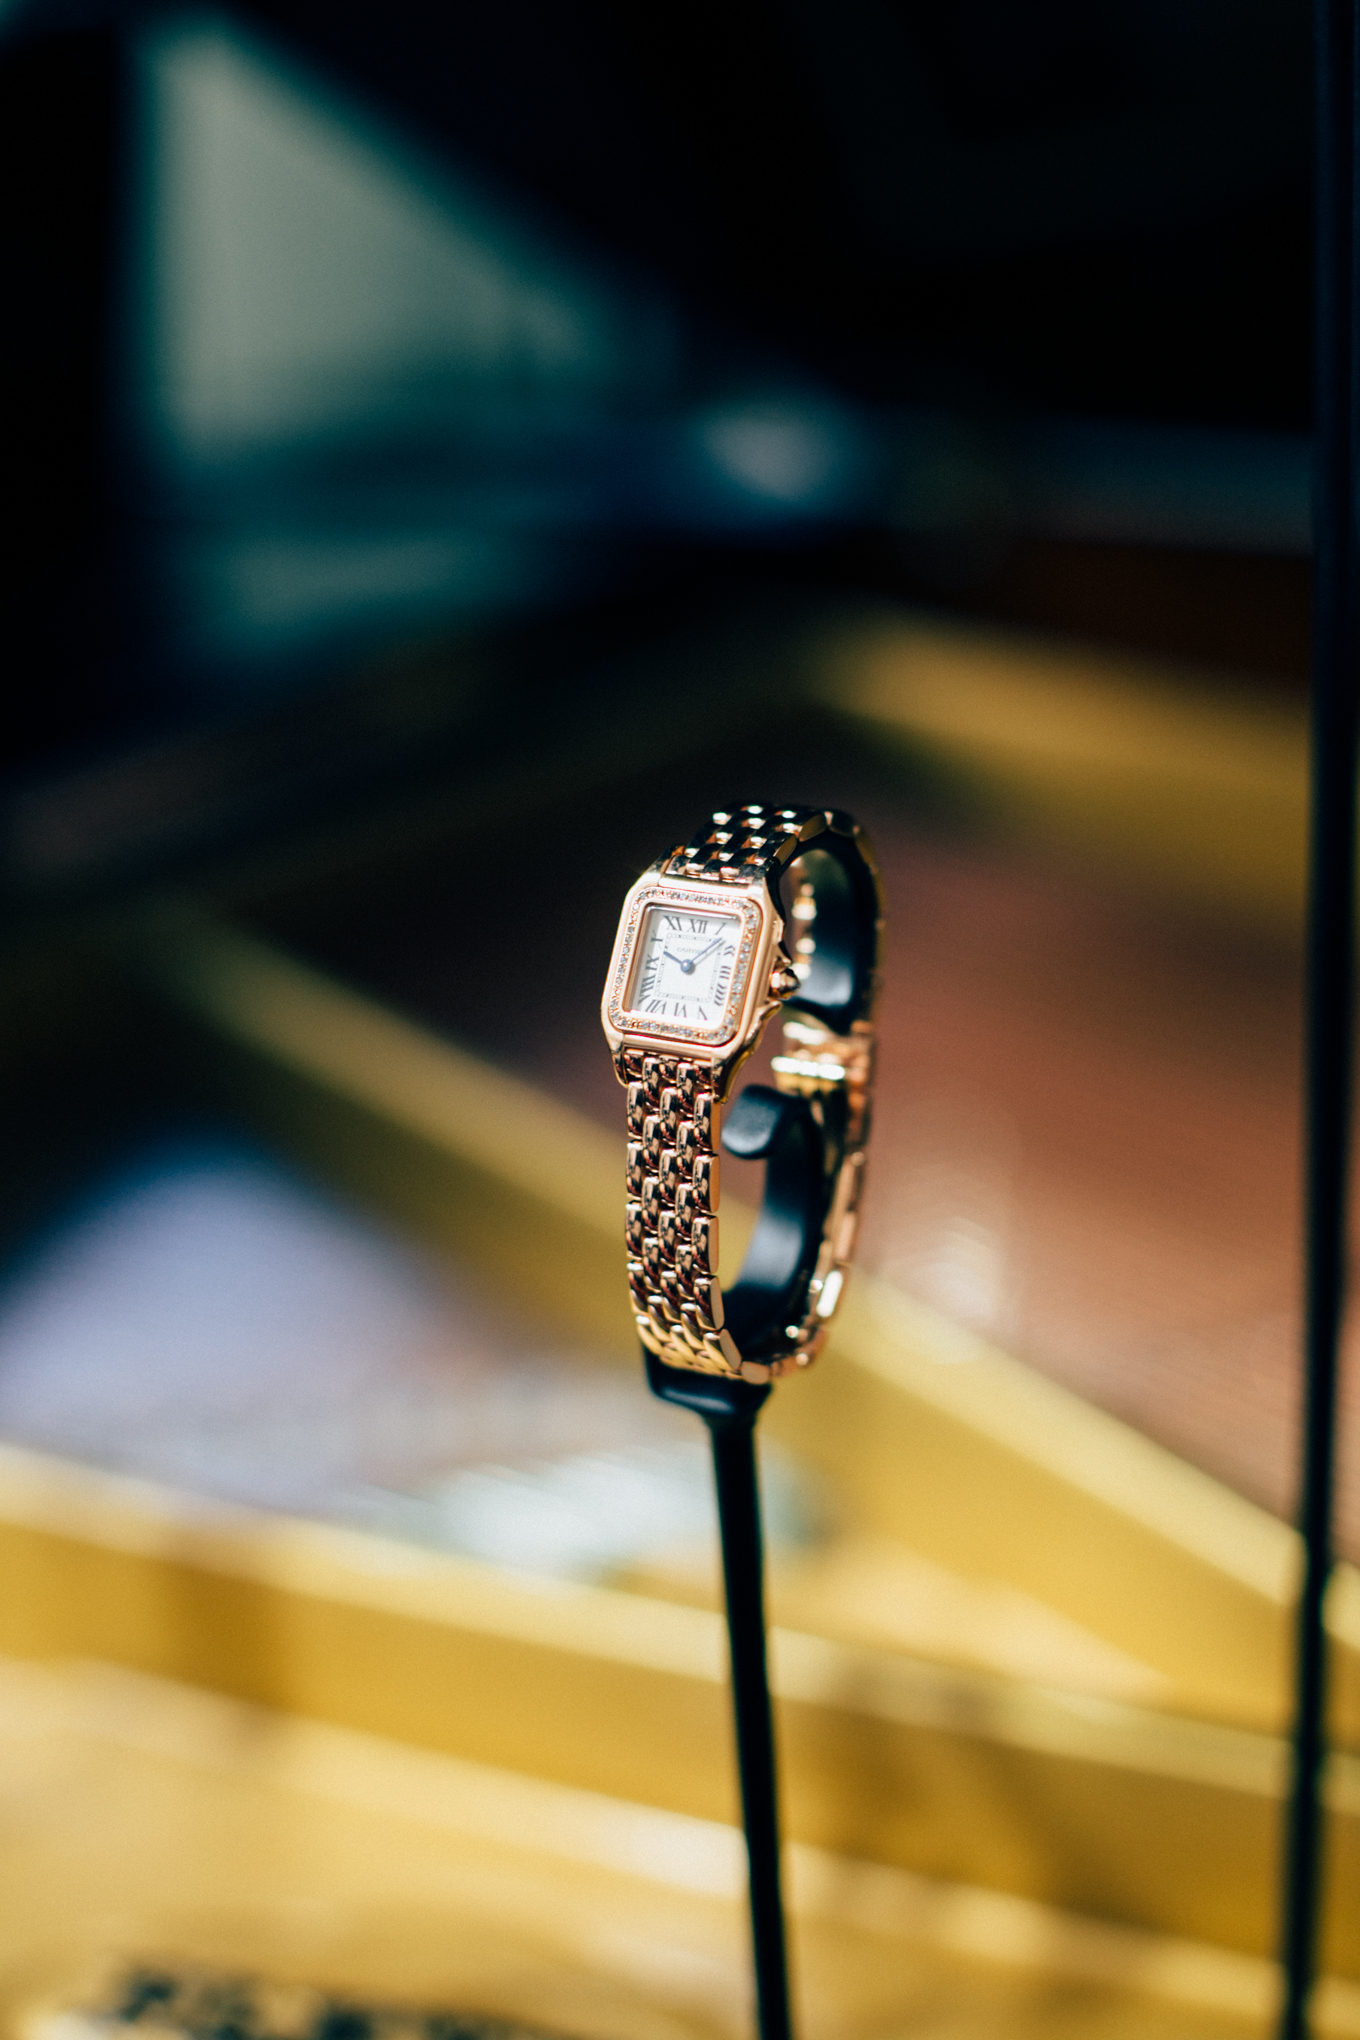 Cartier Press Day Paris | The Daily Dose